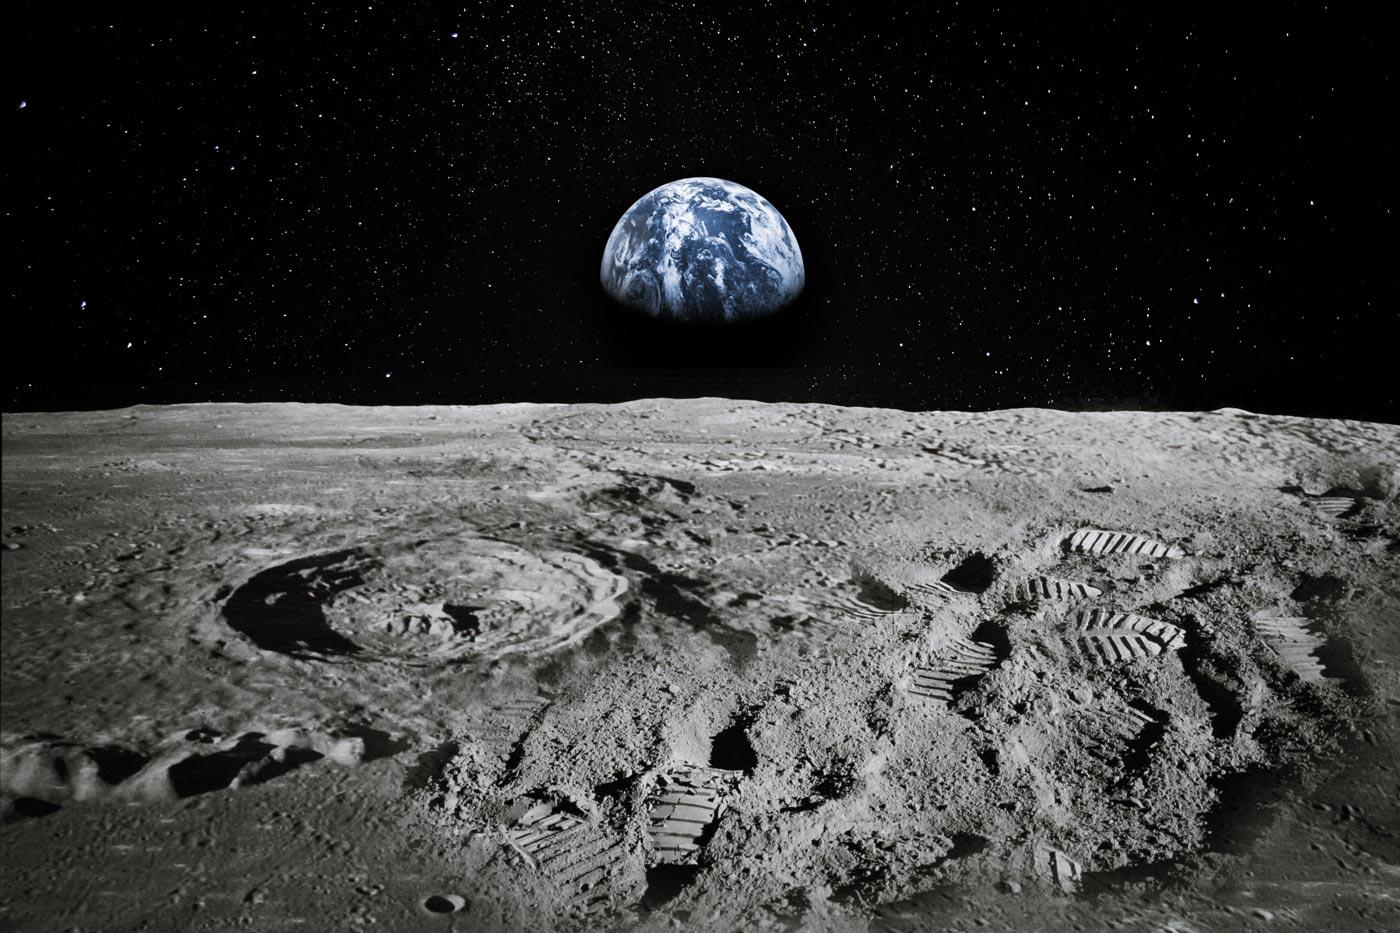 earth view from moon perspective footprints